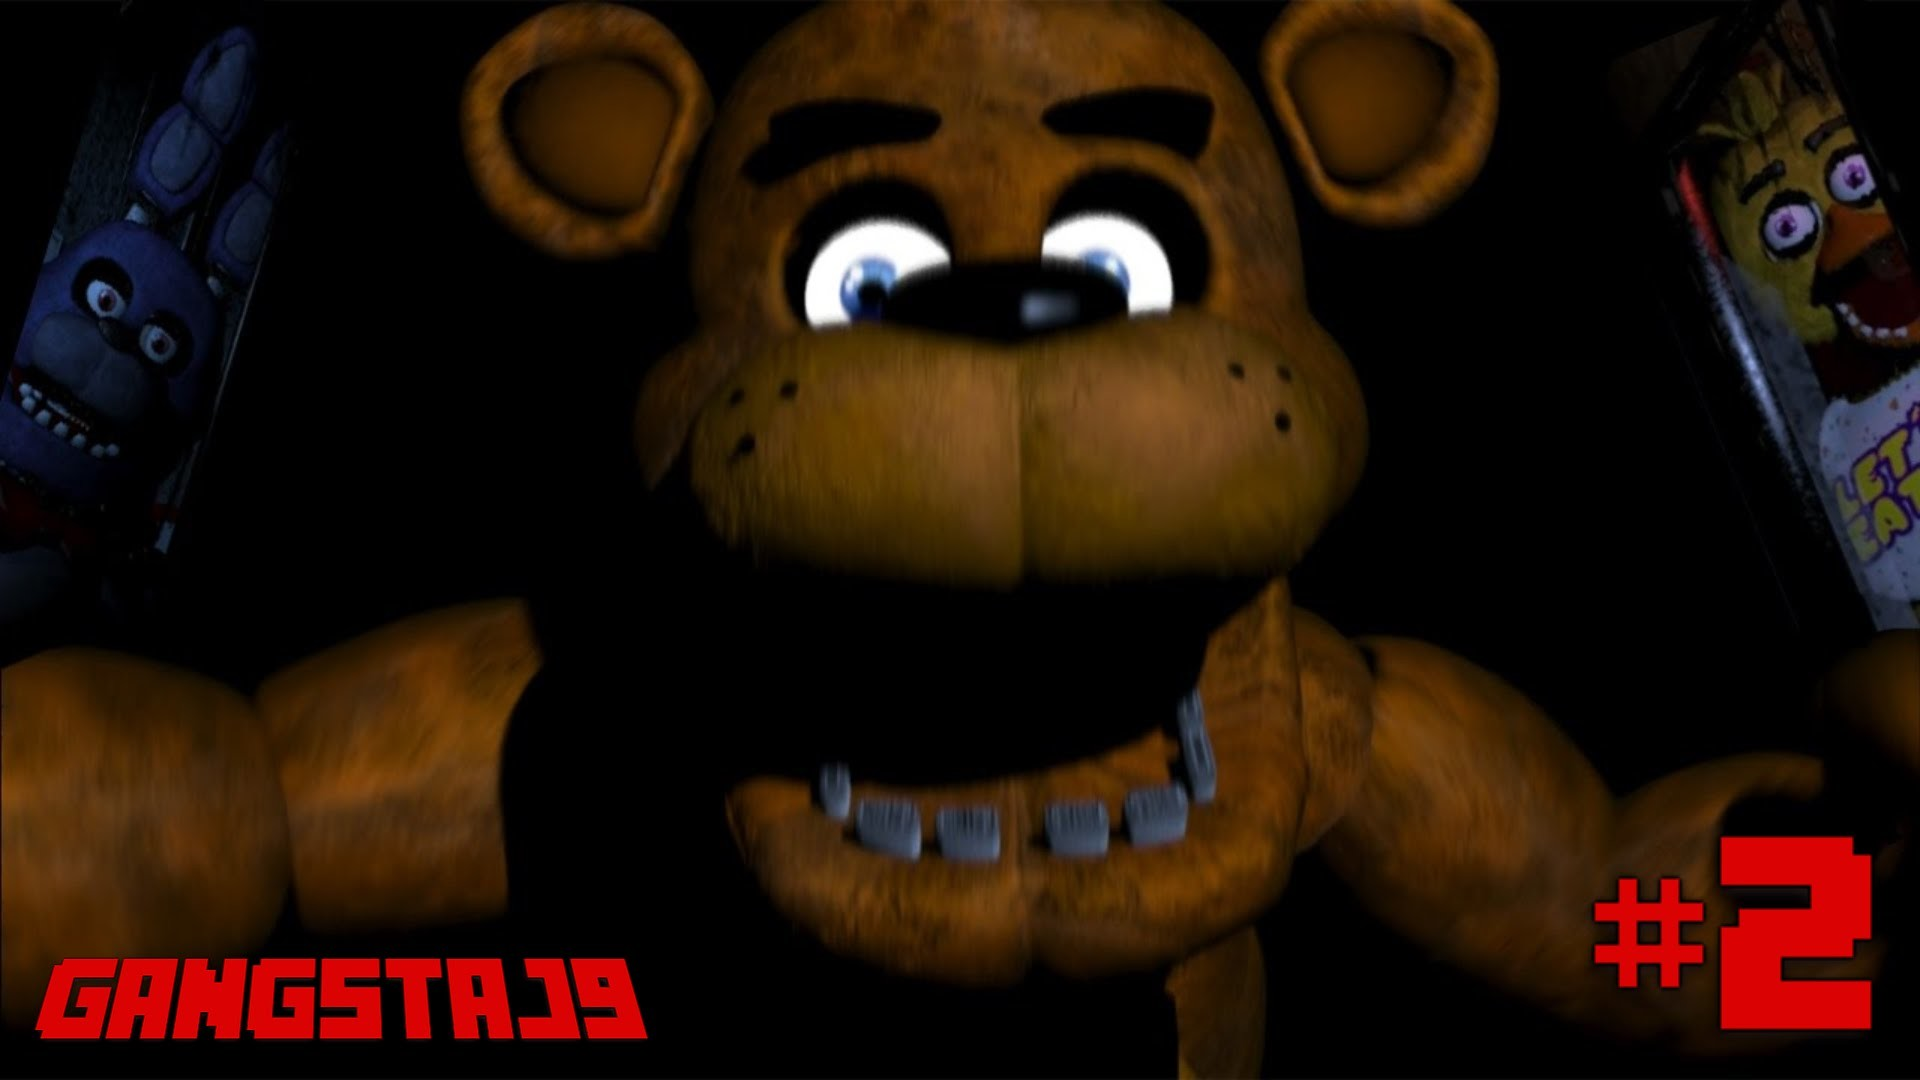 Five Nights at Freddy's #2 – FREDDY DOESN'T MOVE?!